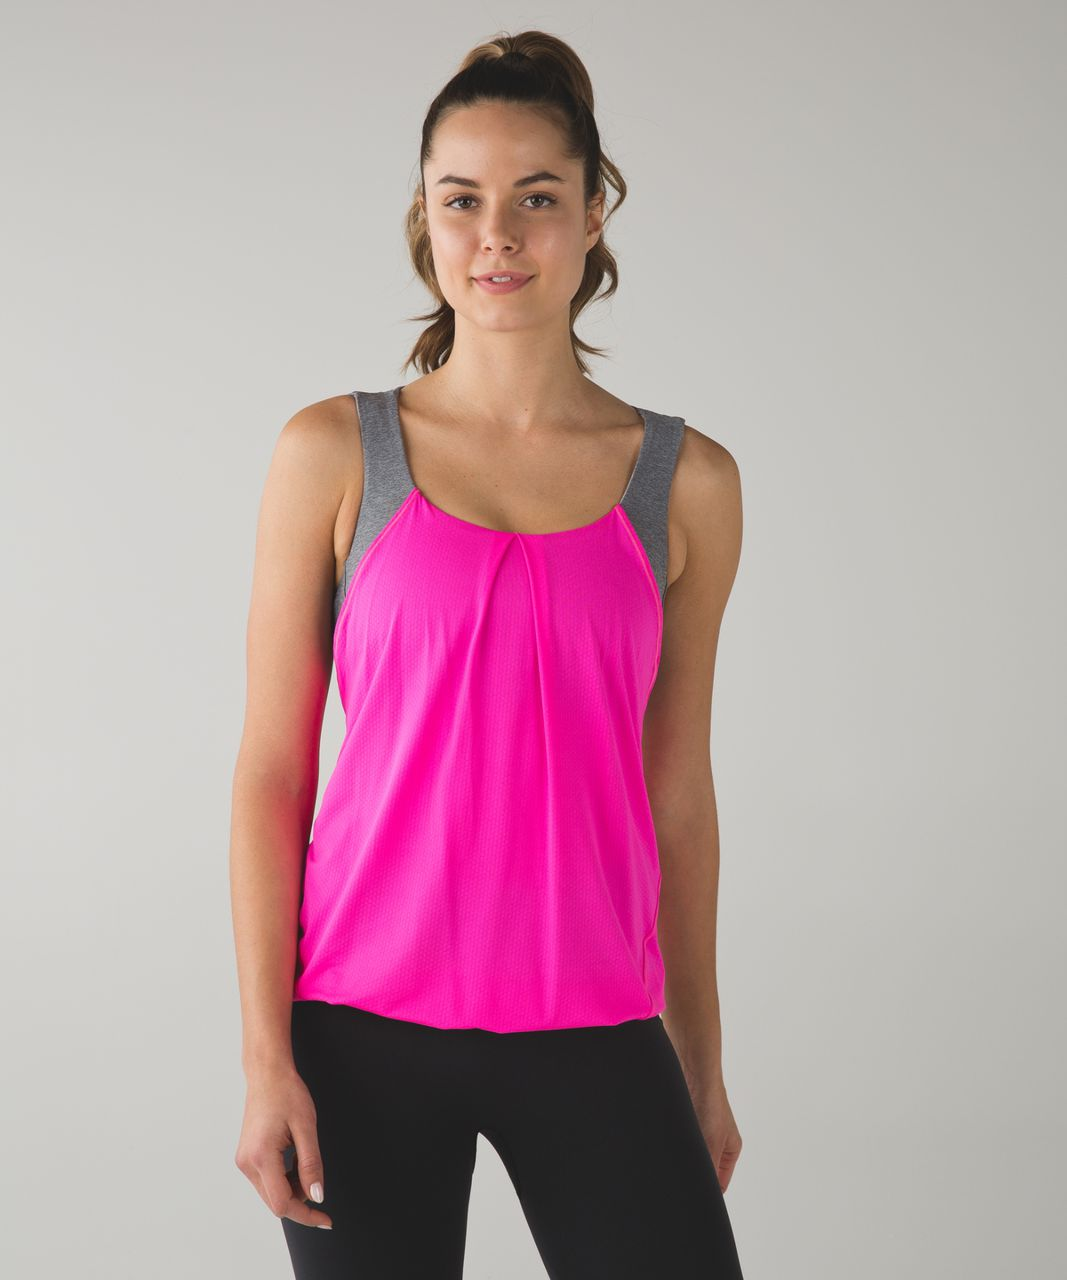 Lululemon Nouveau Limits Tank - Raspberry Glo Light